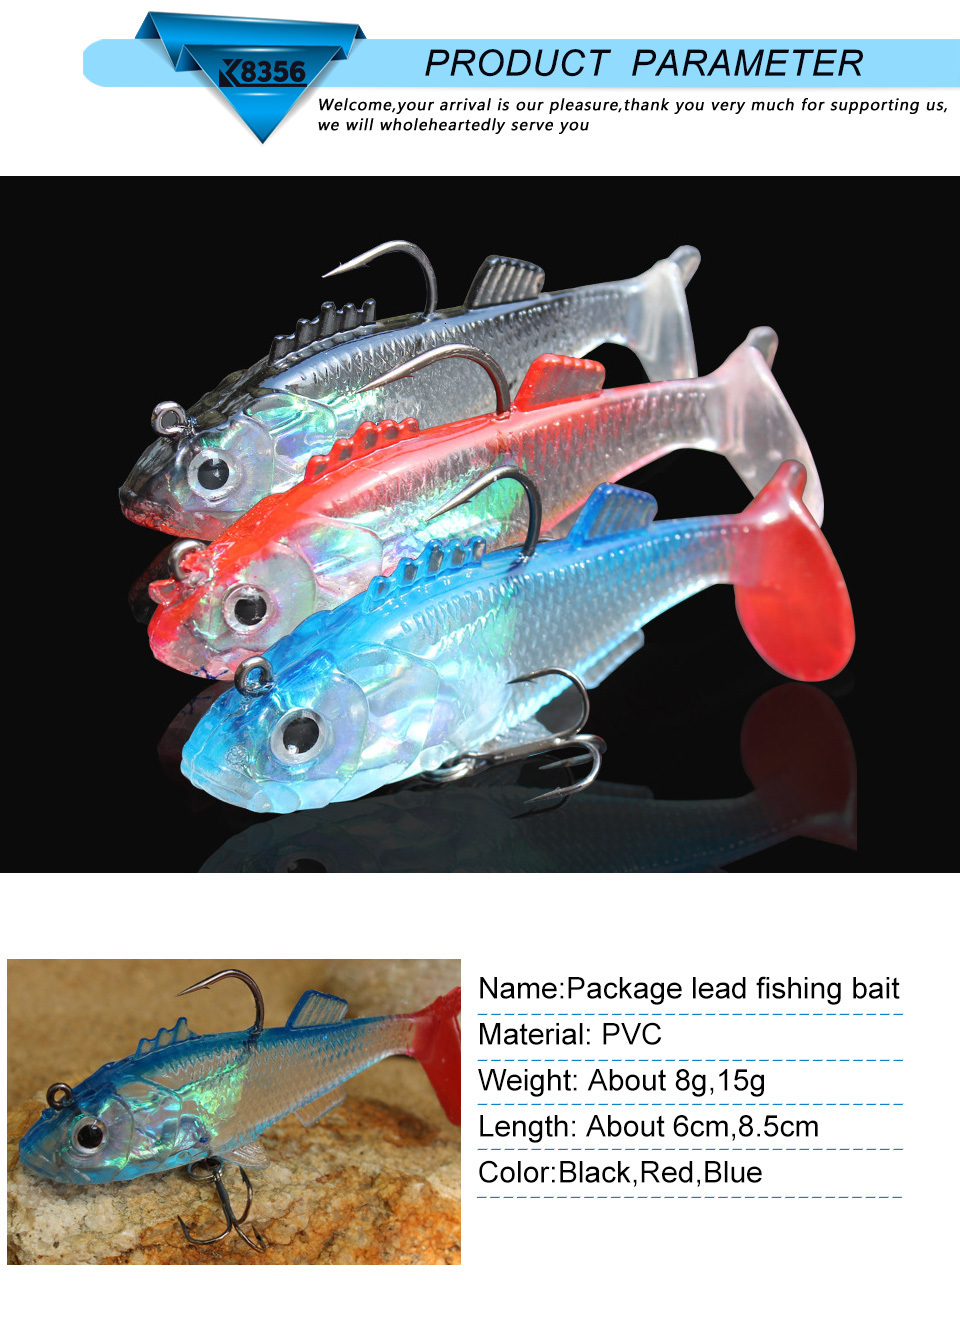 K8356-8g-15g-Transparent-Fishing-Lures-Package-Lead-Soft-Bait-Multicolor-Artificial-Bait-Jig-Fake-Lure-Sea-Fishing-Tackle_02